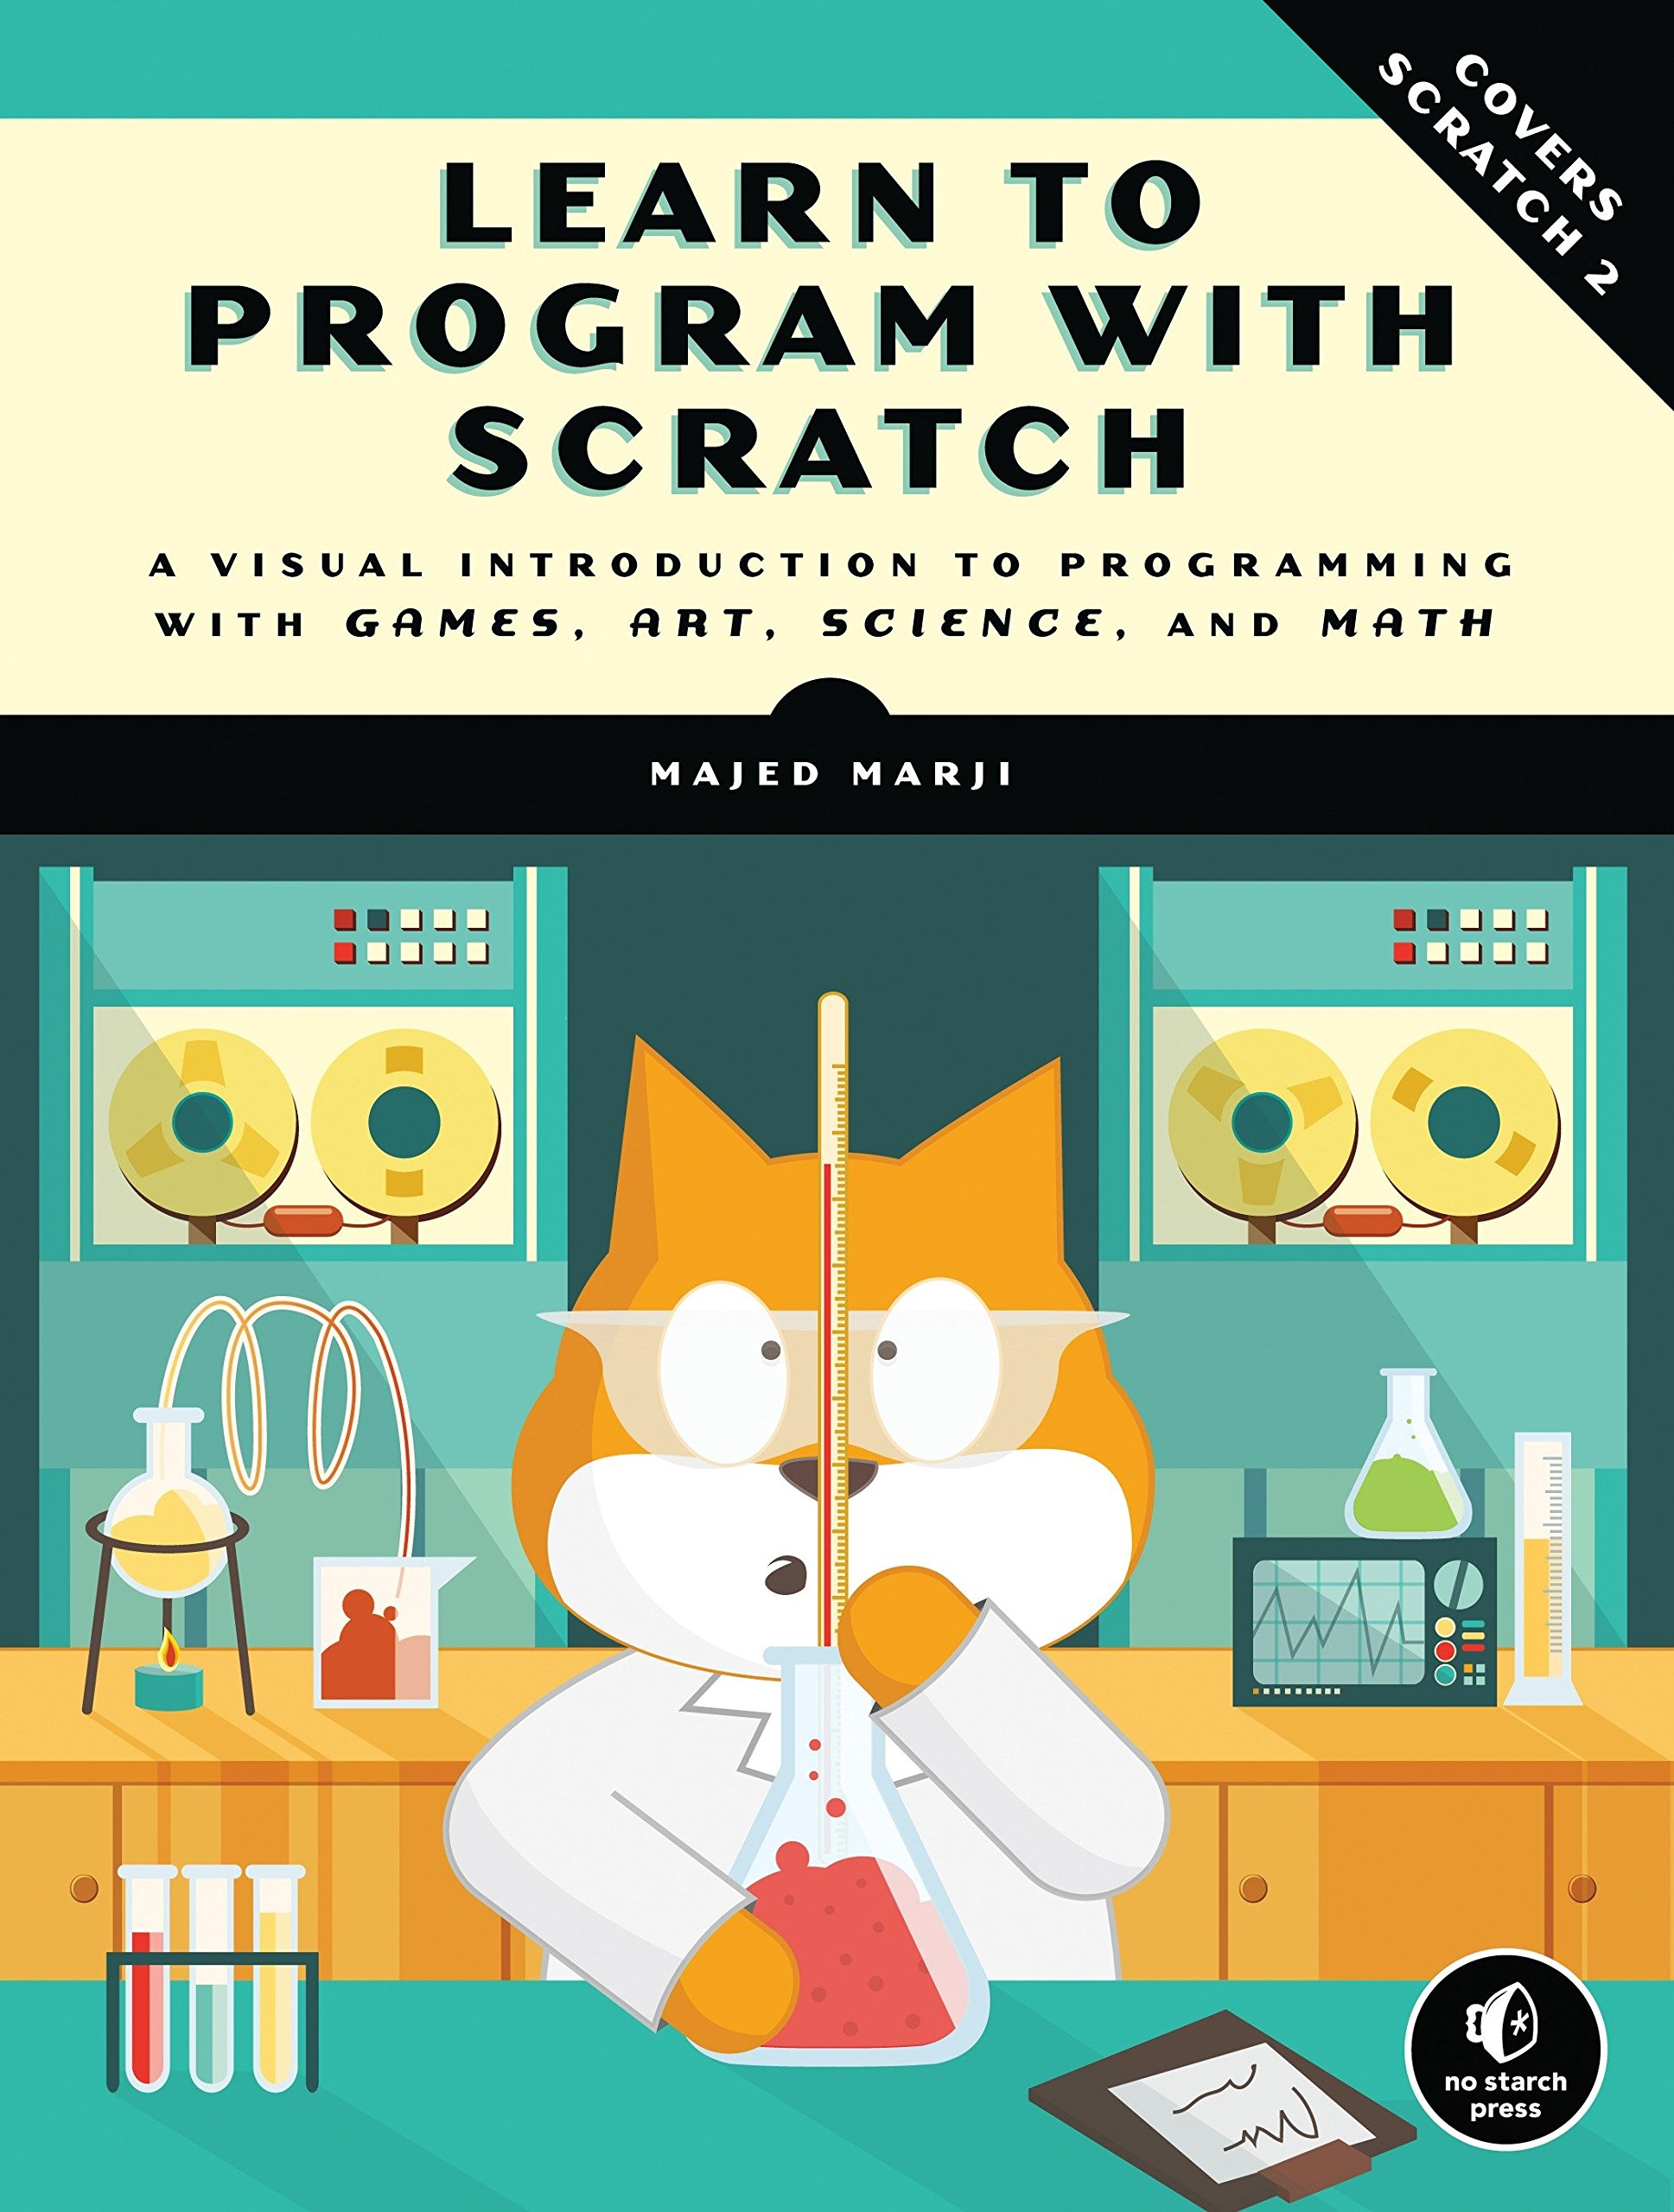 Learn to Program with Scratch: A Visual Introduction to Programming with Games, Art, Science, and Math by Penguin Books